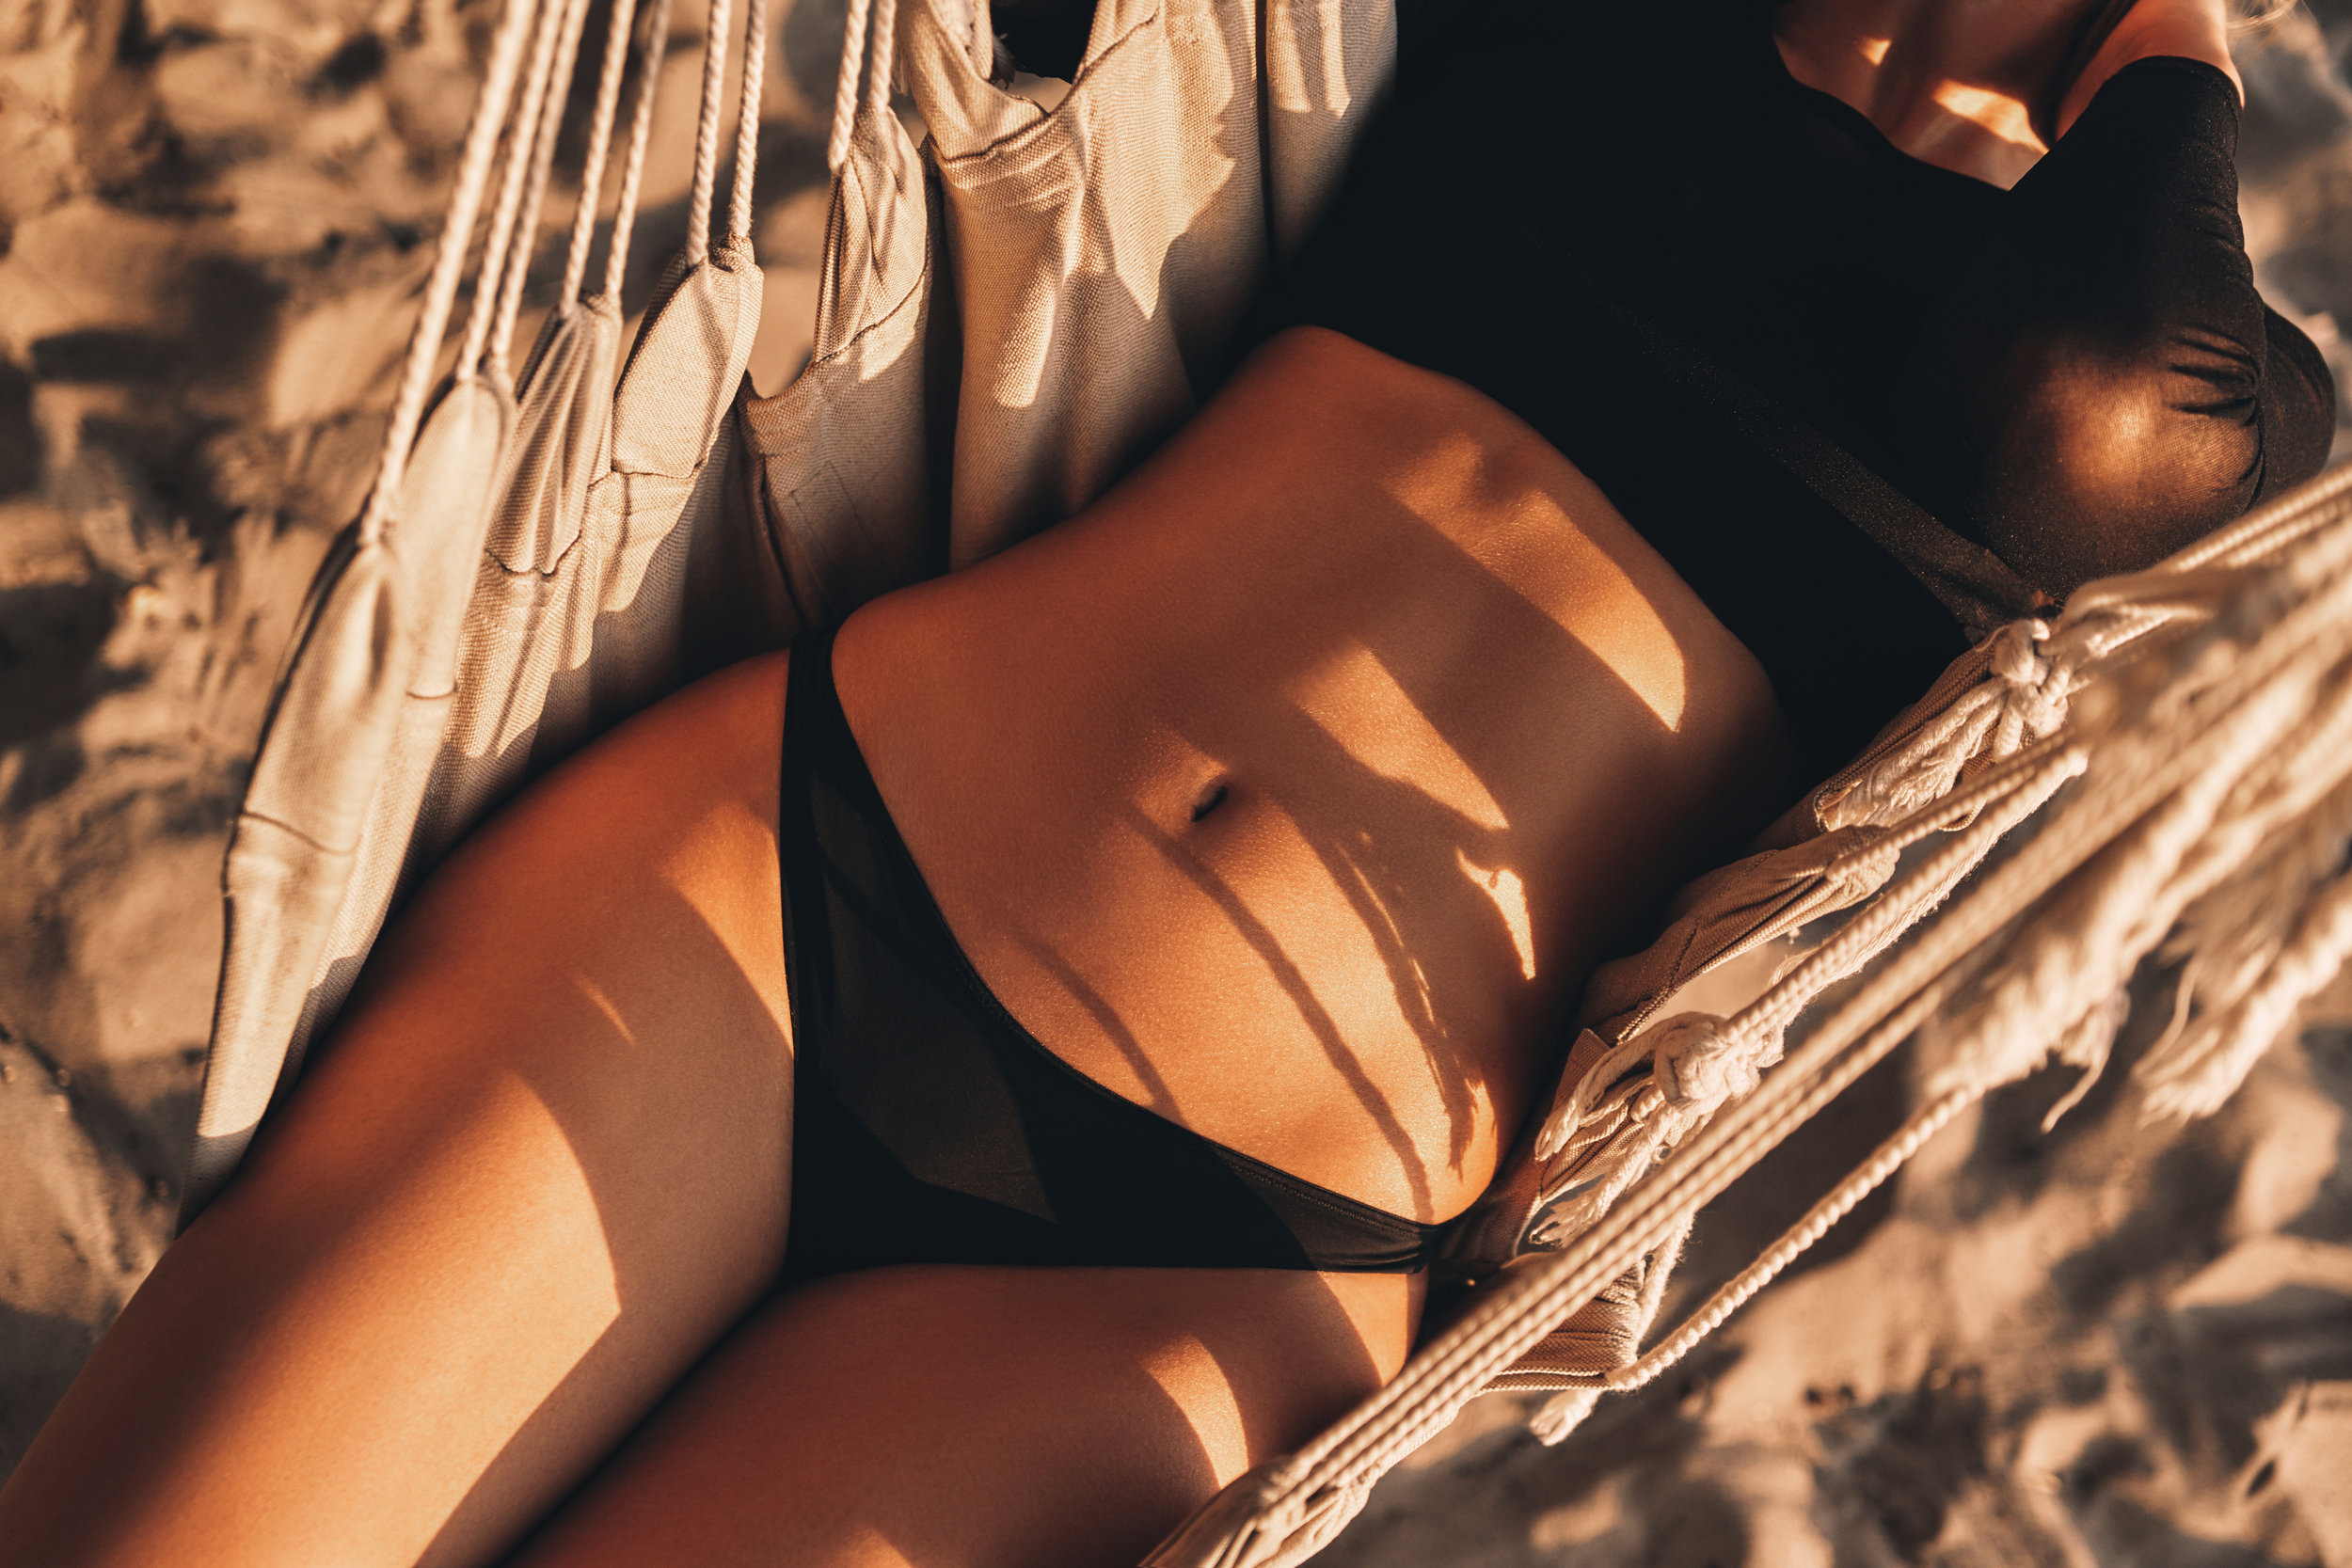 Visit resouLuna - resouLuna | SPECIALTIES IN AESTHETICS – MedSpa is committed to providing each and every client exceptional service, efficacy and safety in a comfortable, spa-like atmosphere. Learn more about our featured service, CoolSculpting, and how you can achieve real results without surgery.